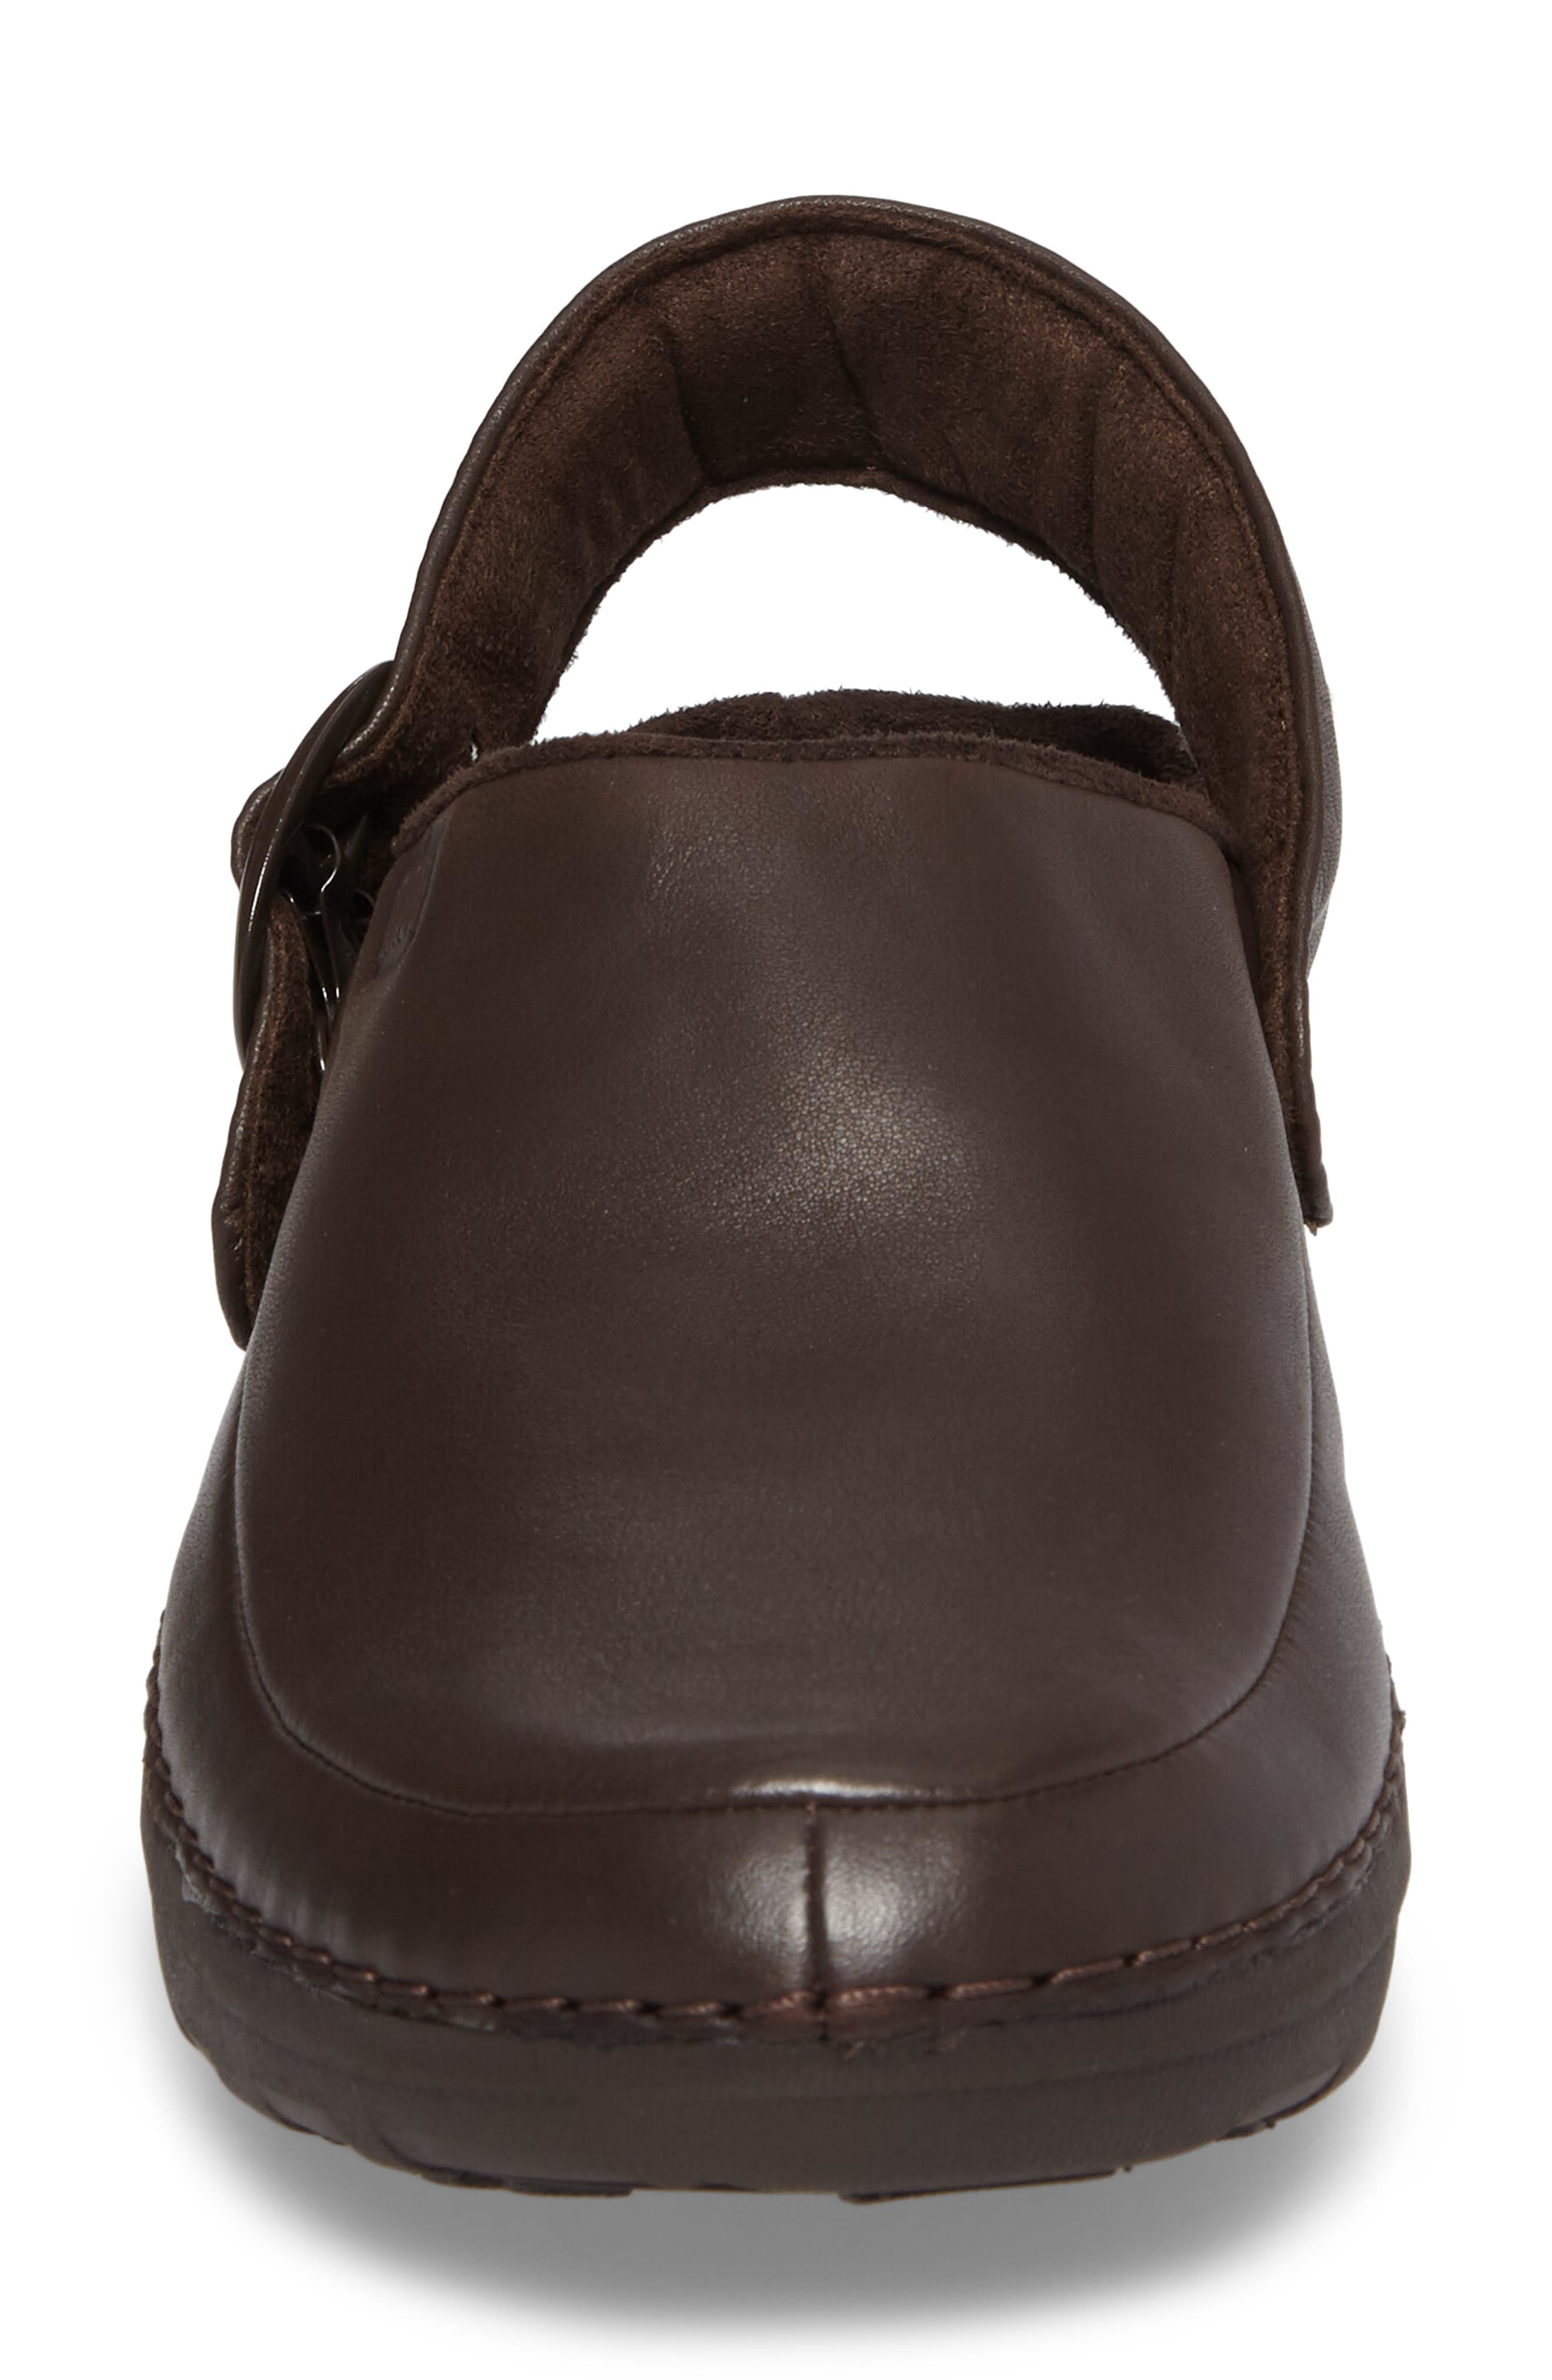 Gogh Pro - Superlight Clog,                             Alternate thumbnail 4, color,                             Chocolate Brown Leather